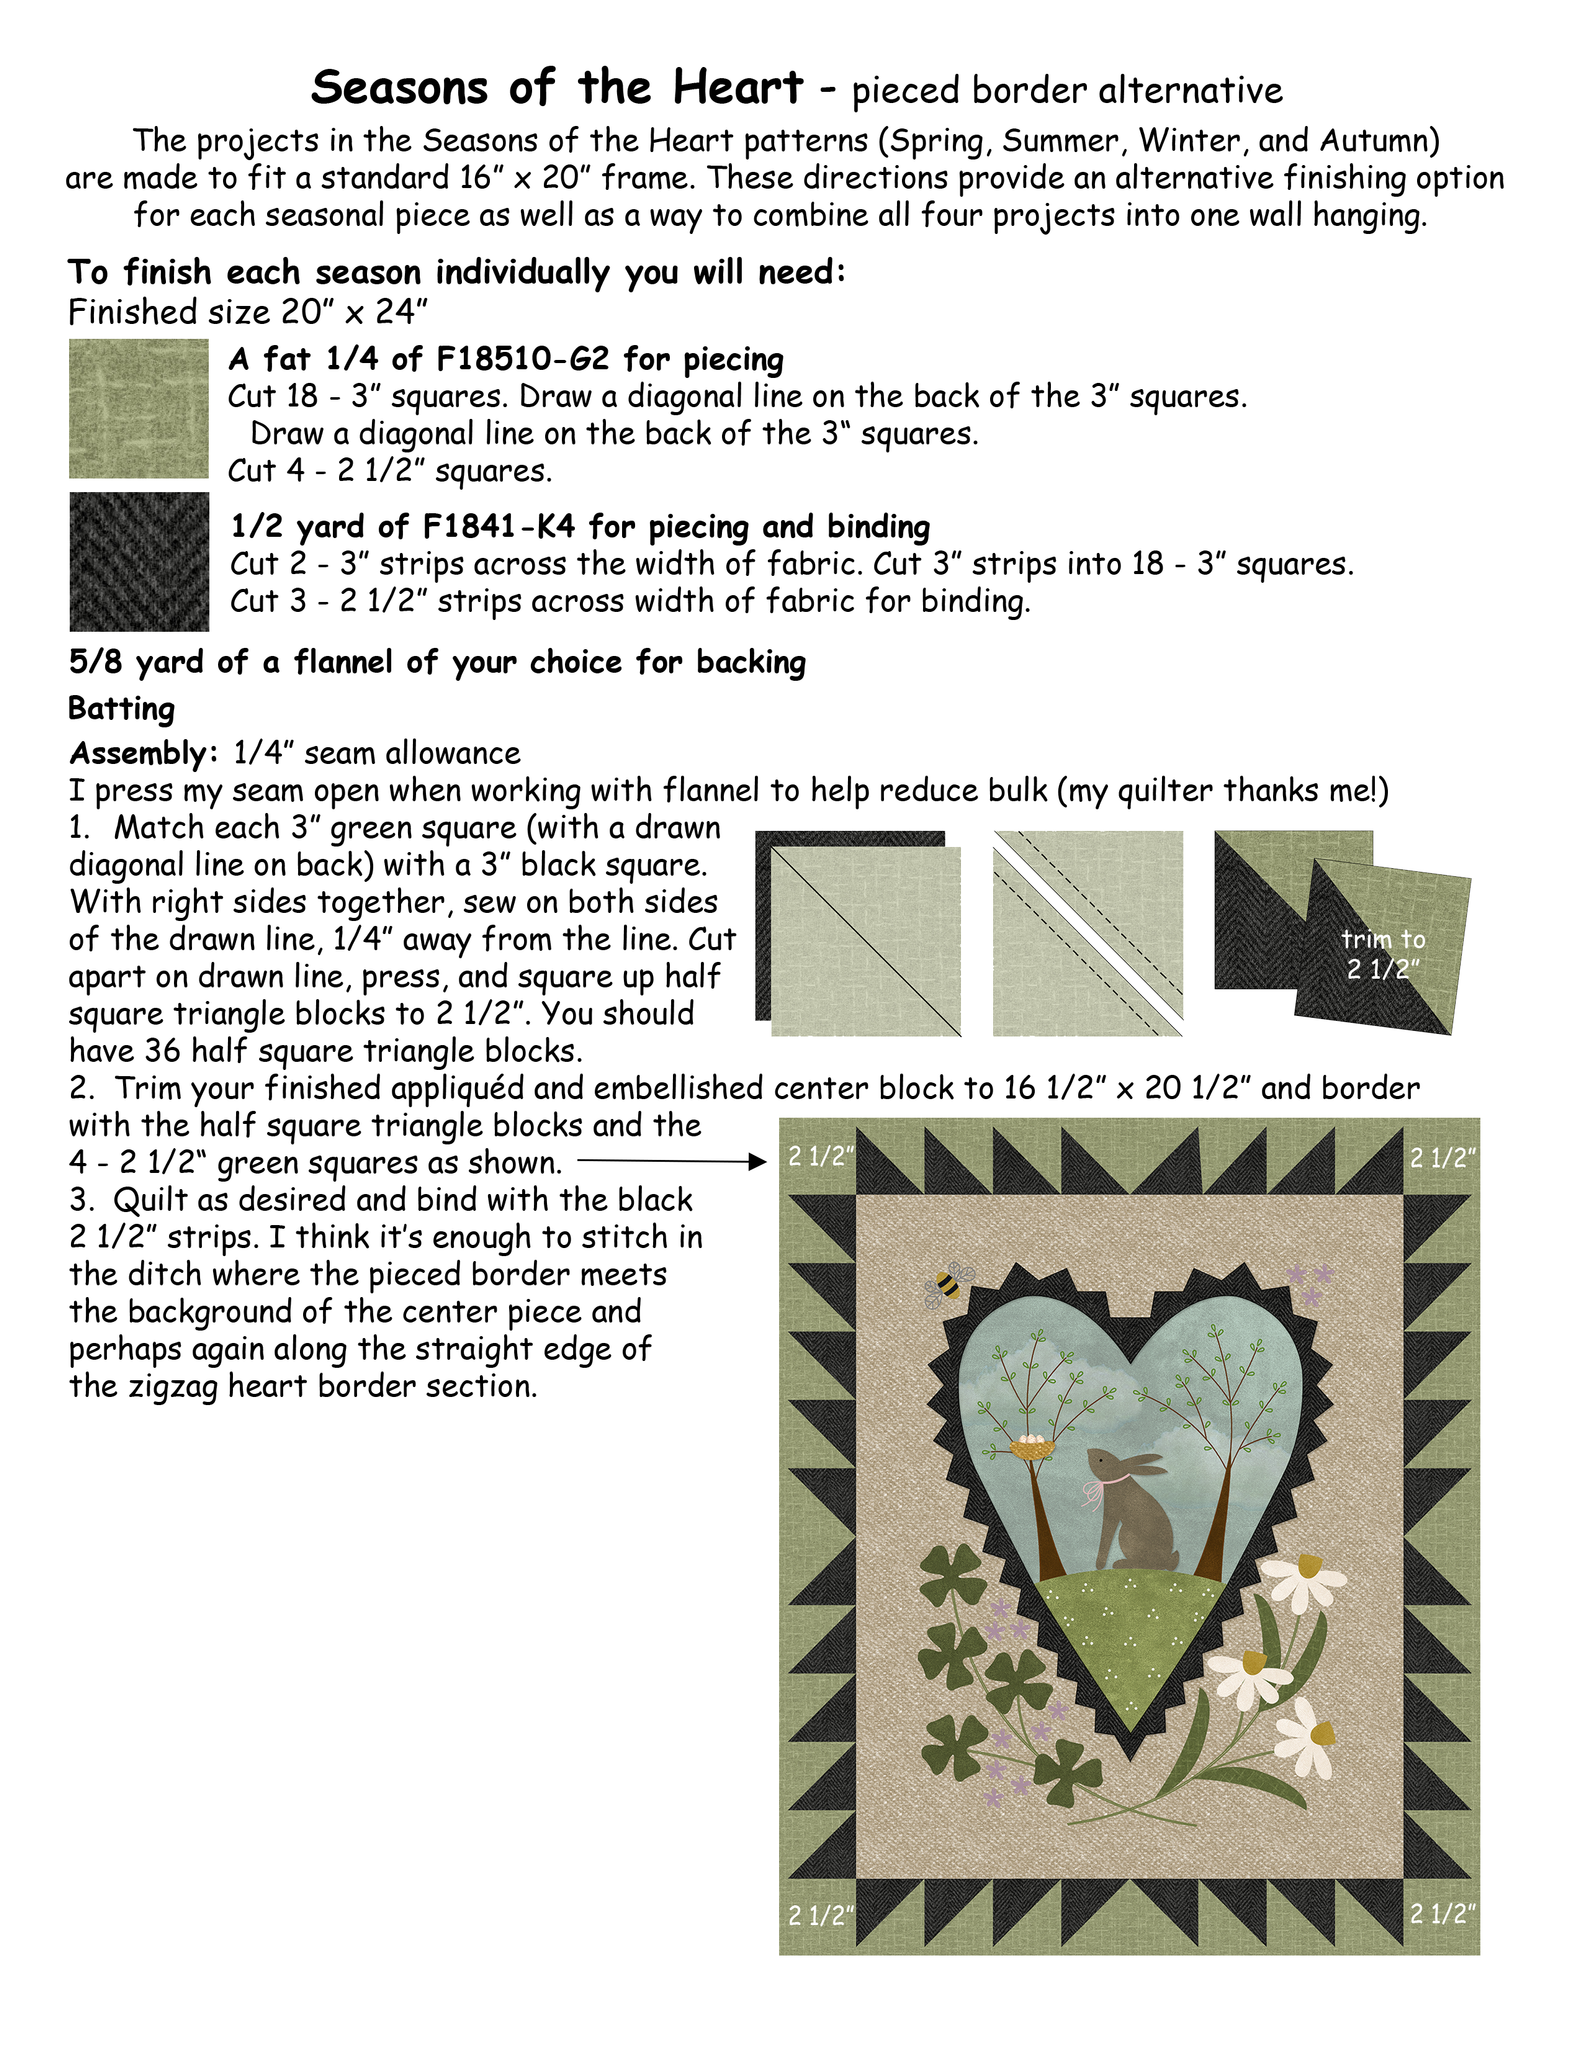 Free Download - Seasons of the Heart alternative finishing directions